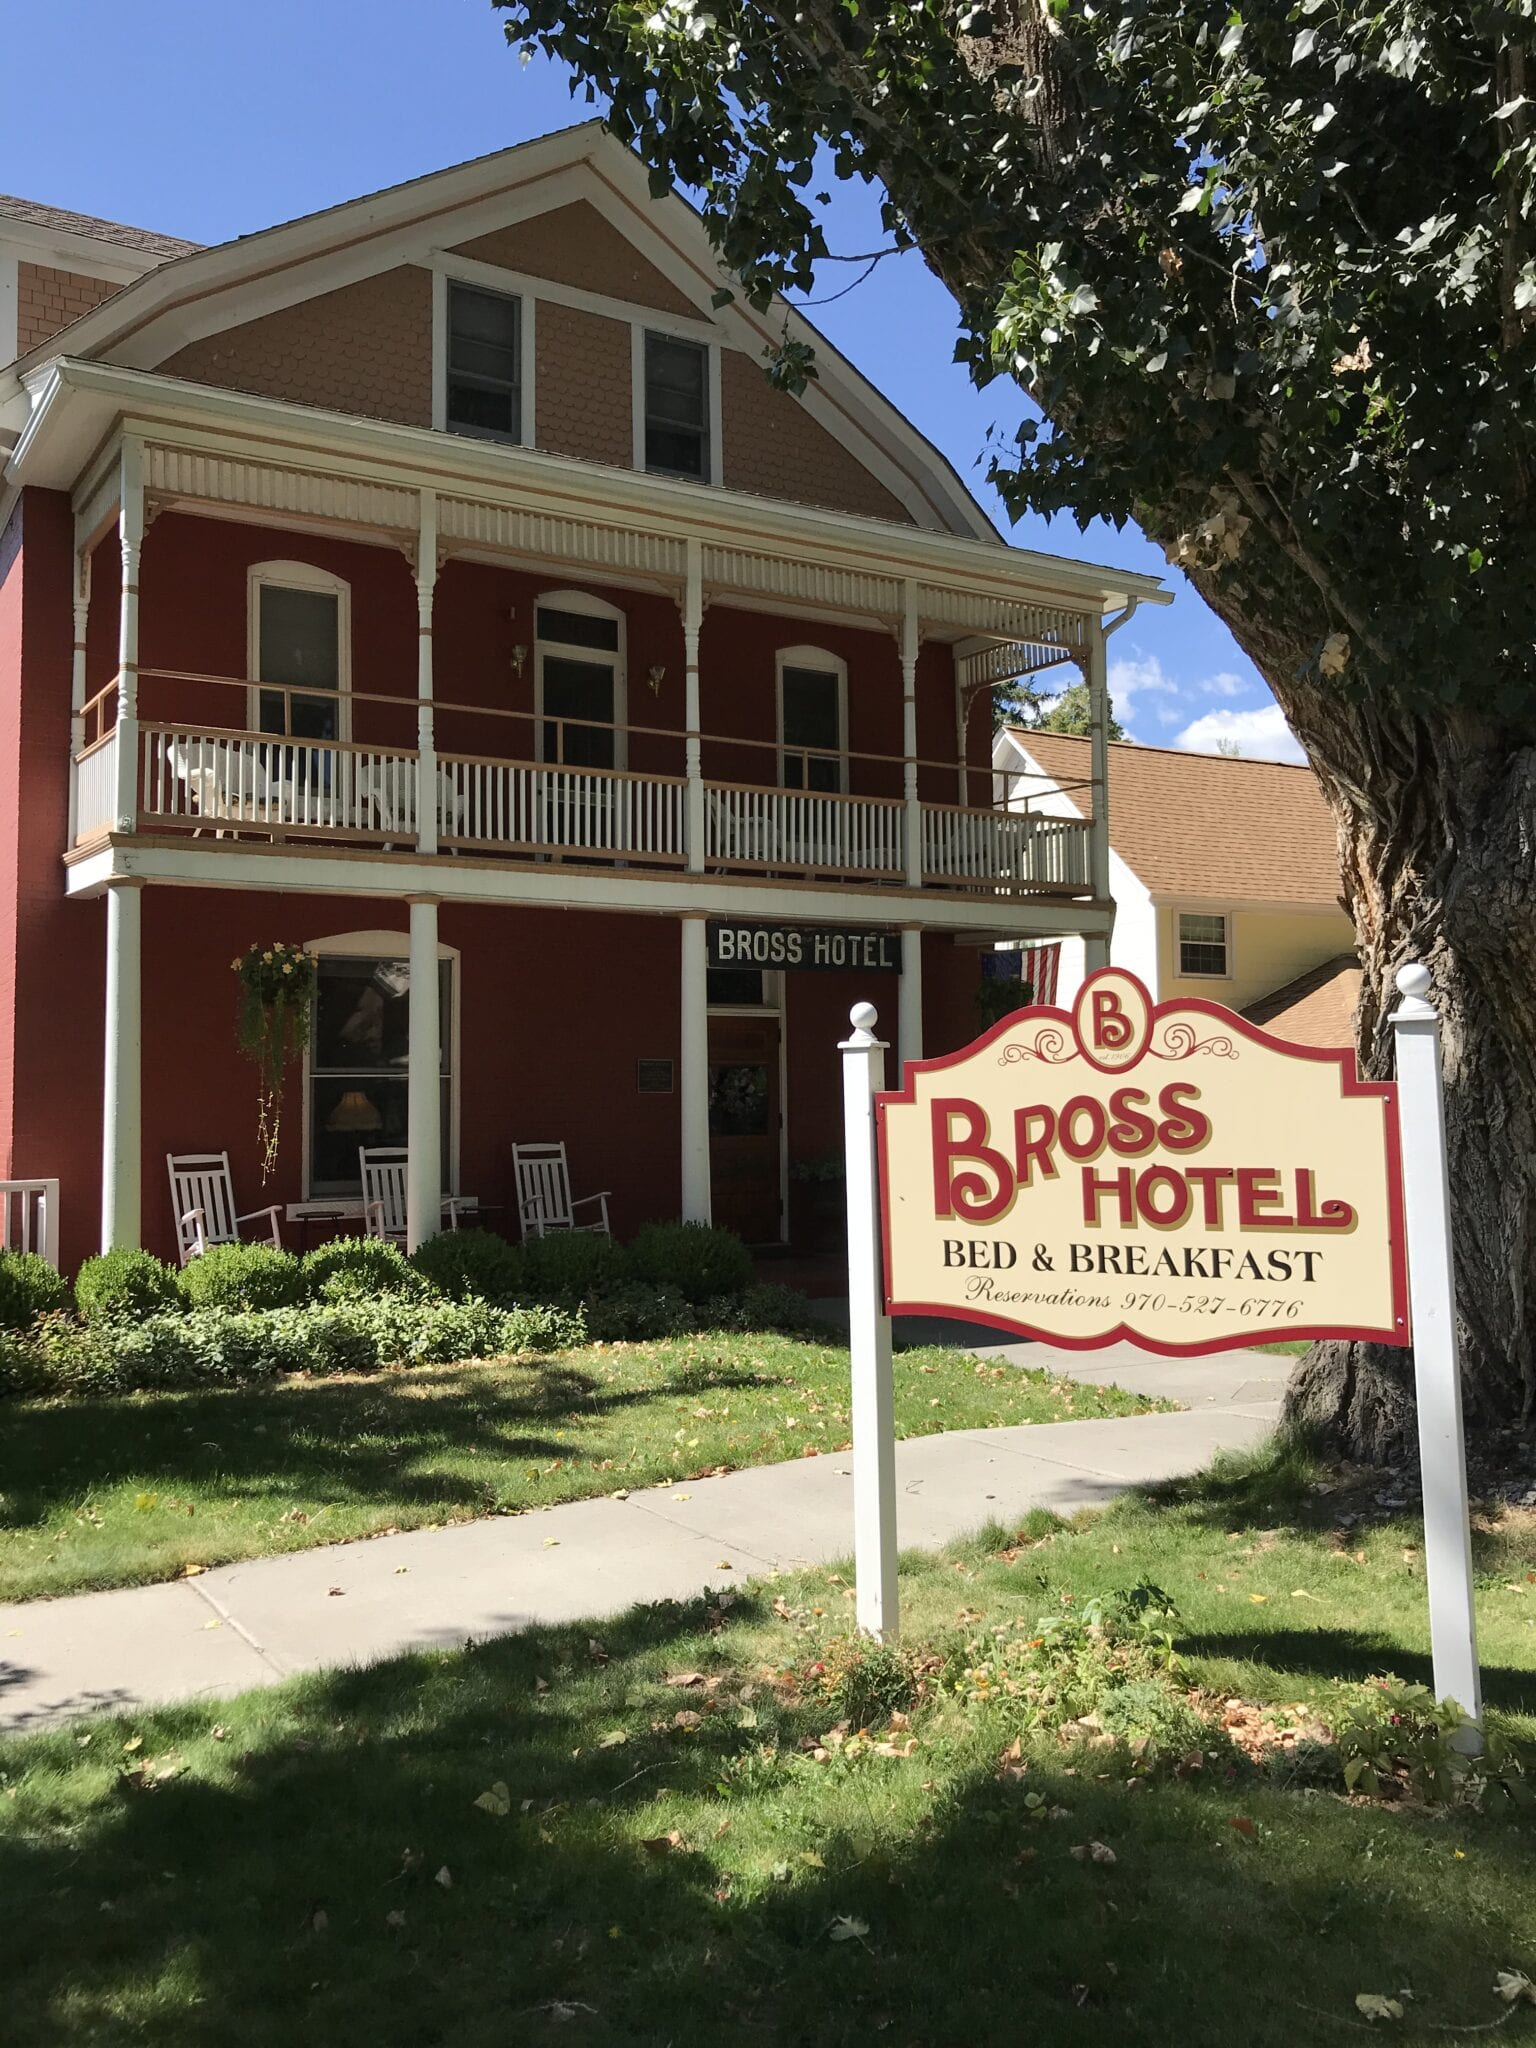 image of the bross hotel